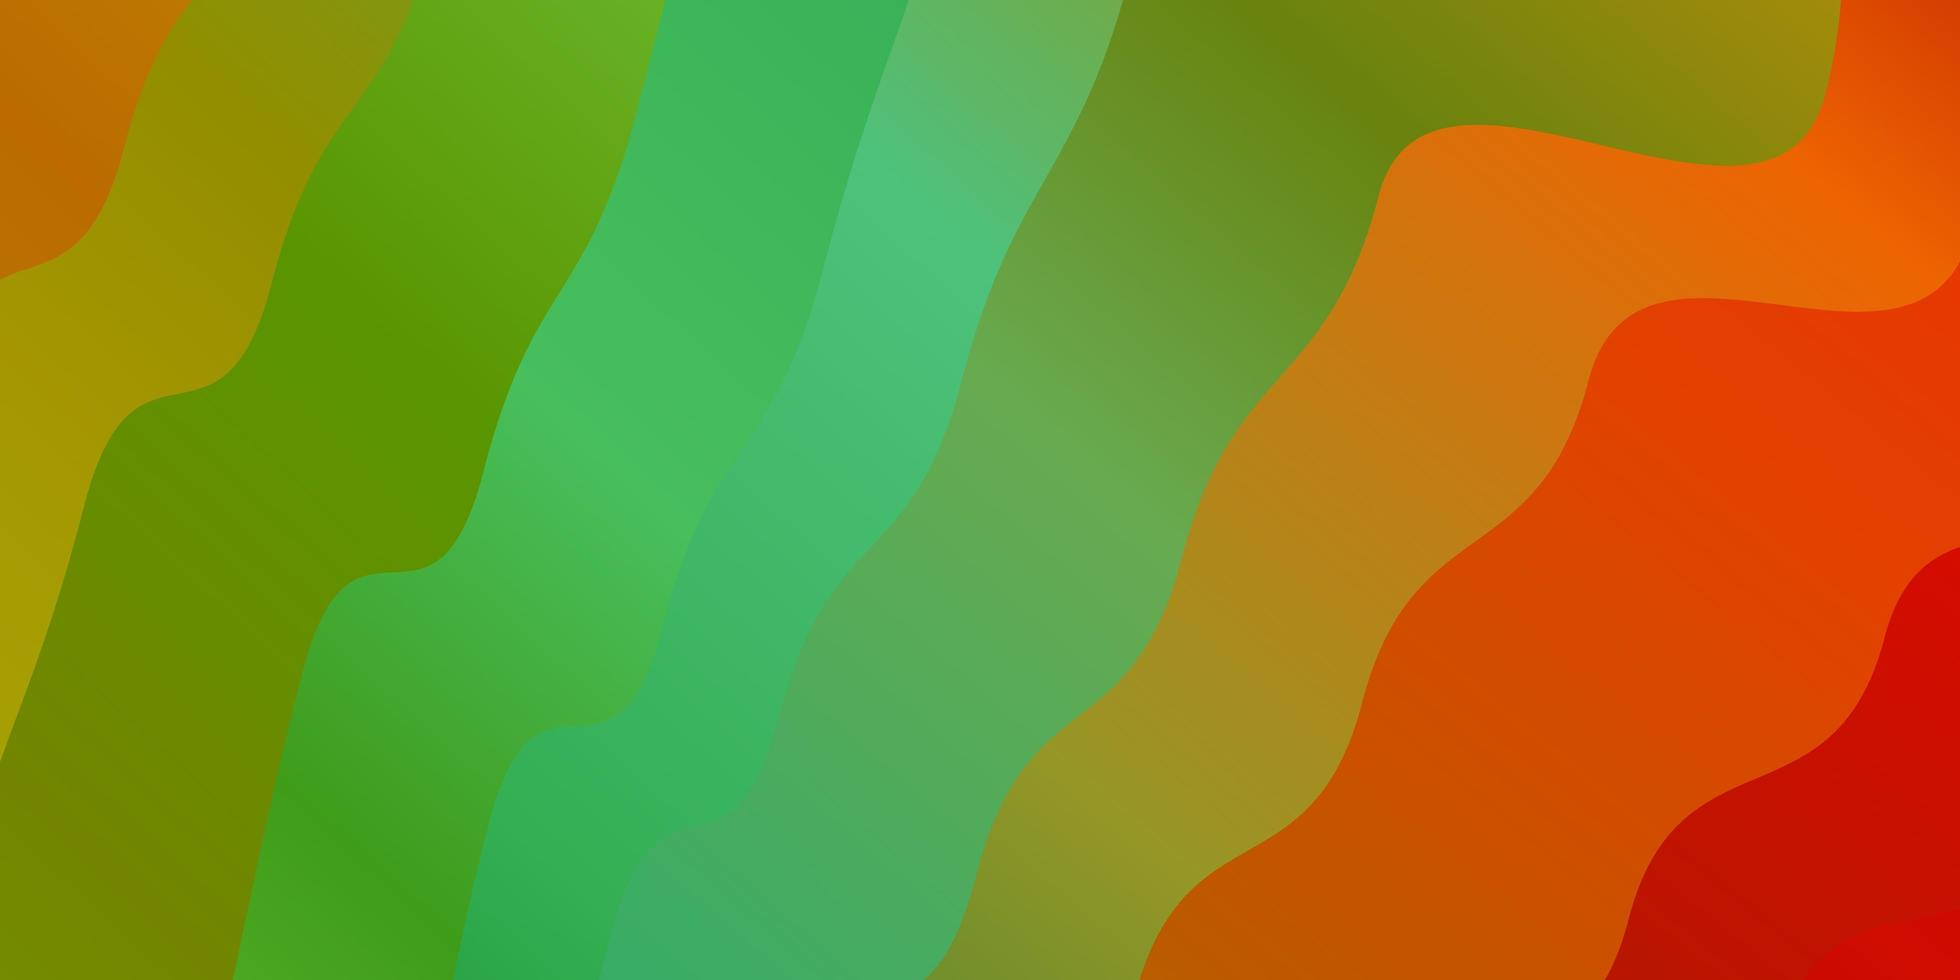 Light Multicolor vector background with wry lines.